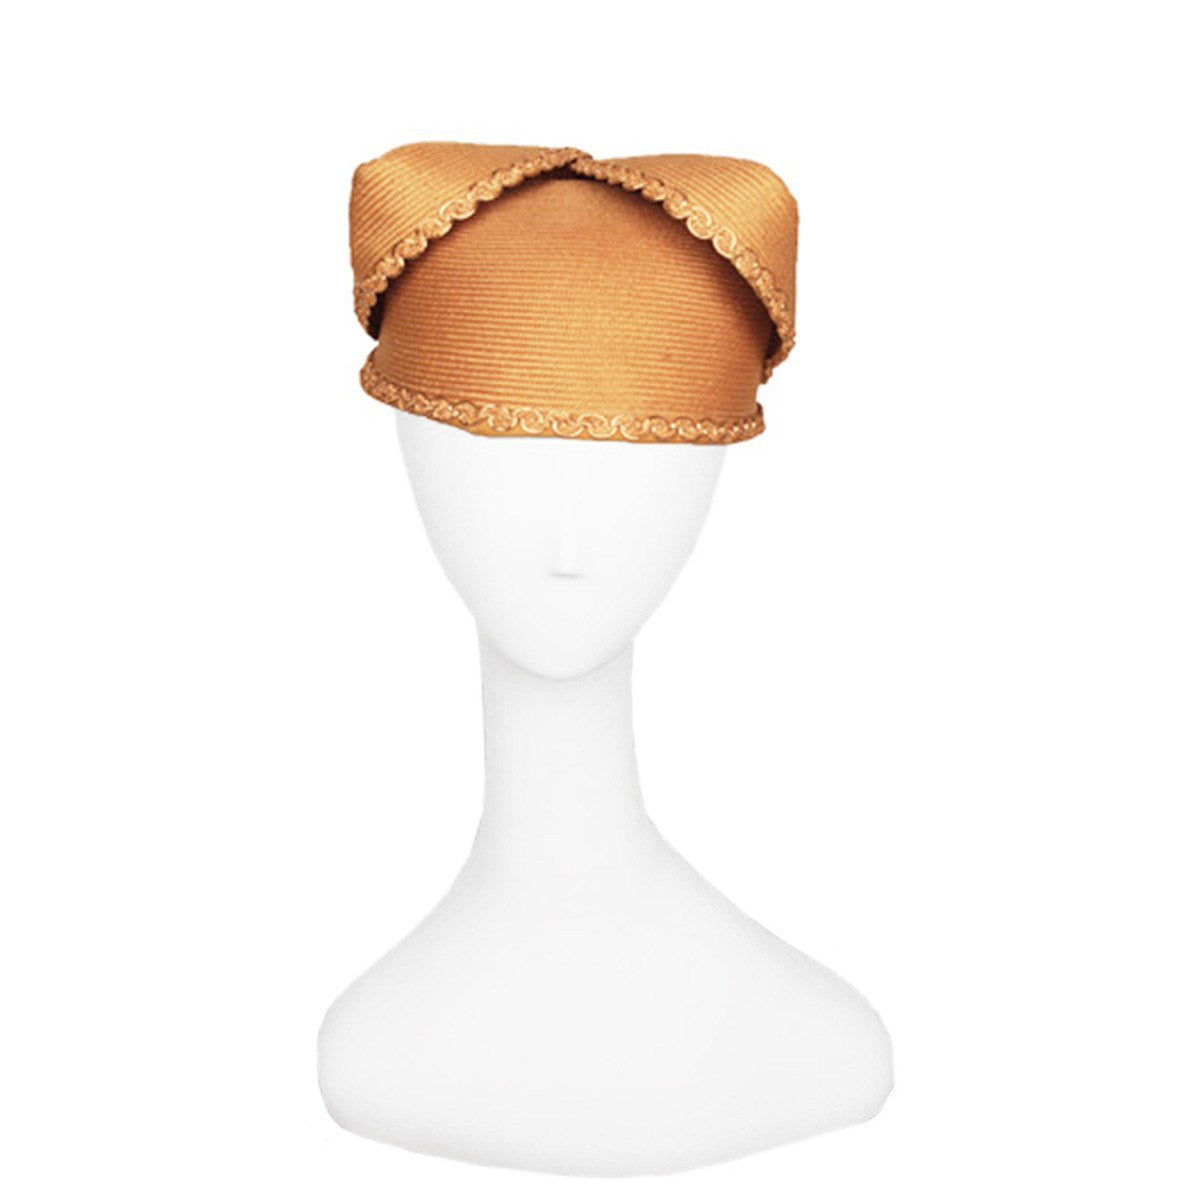 Vintage Gold Folded Straw Hat, Ric Rac Trim